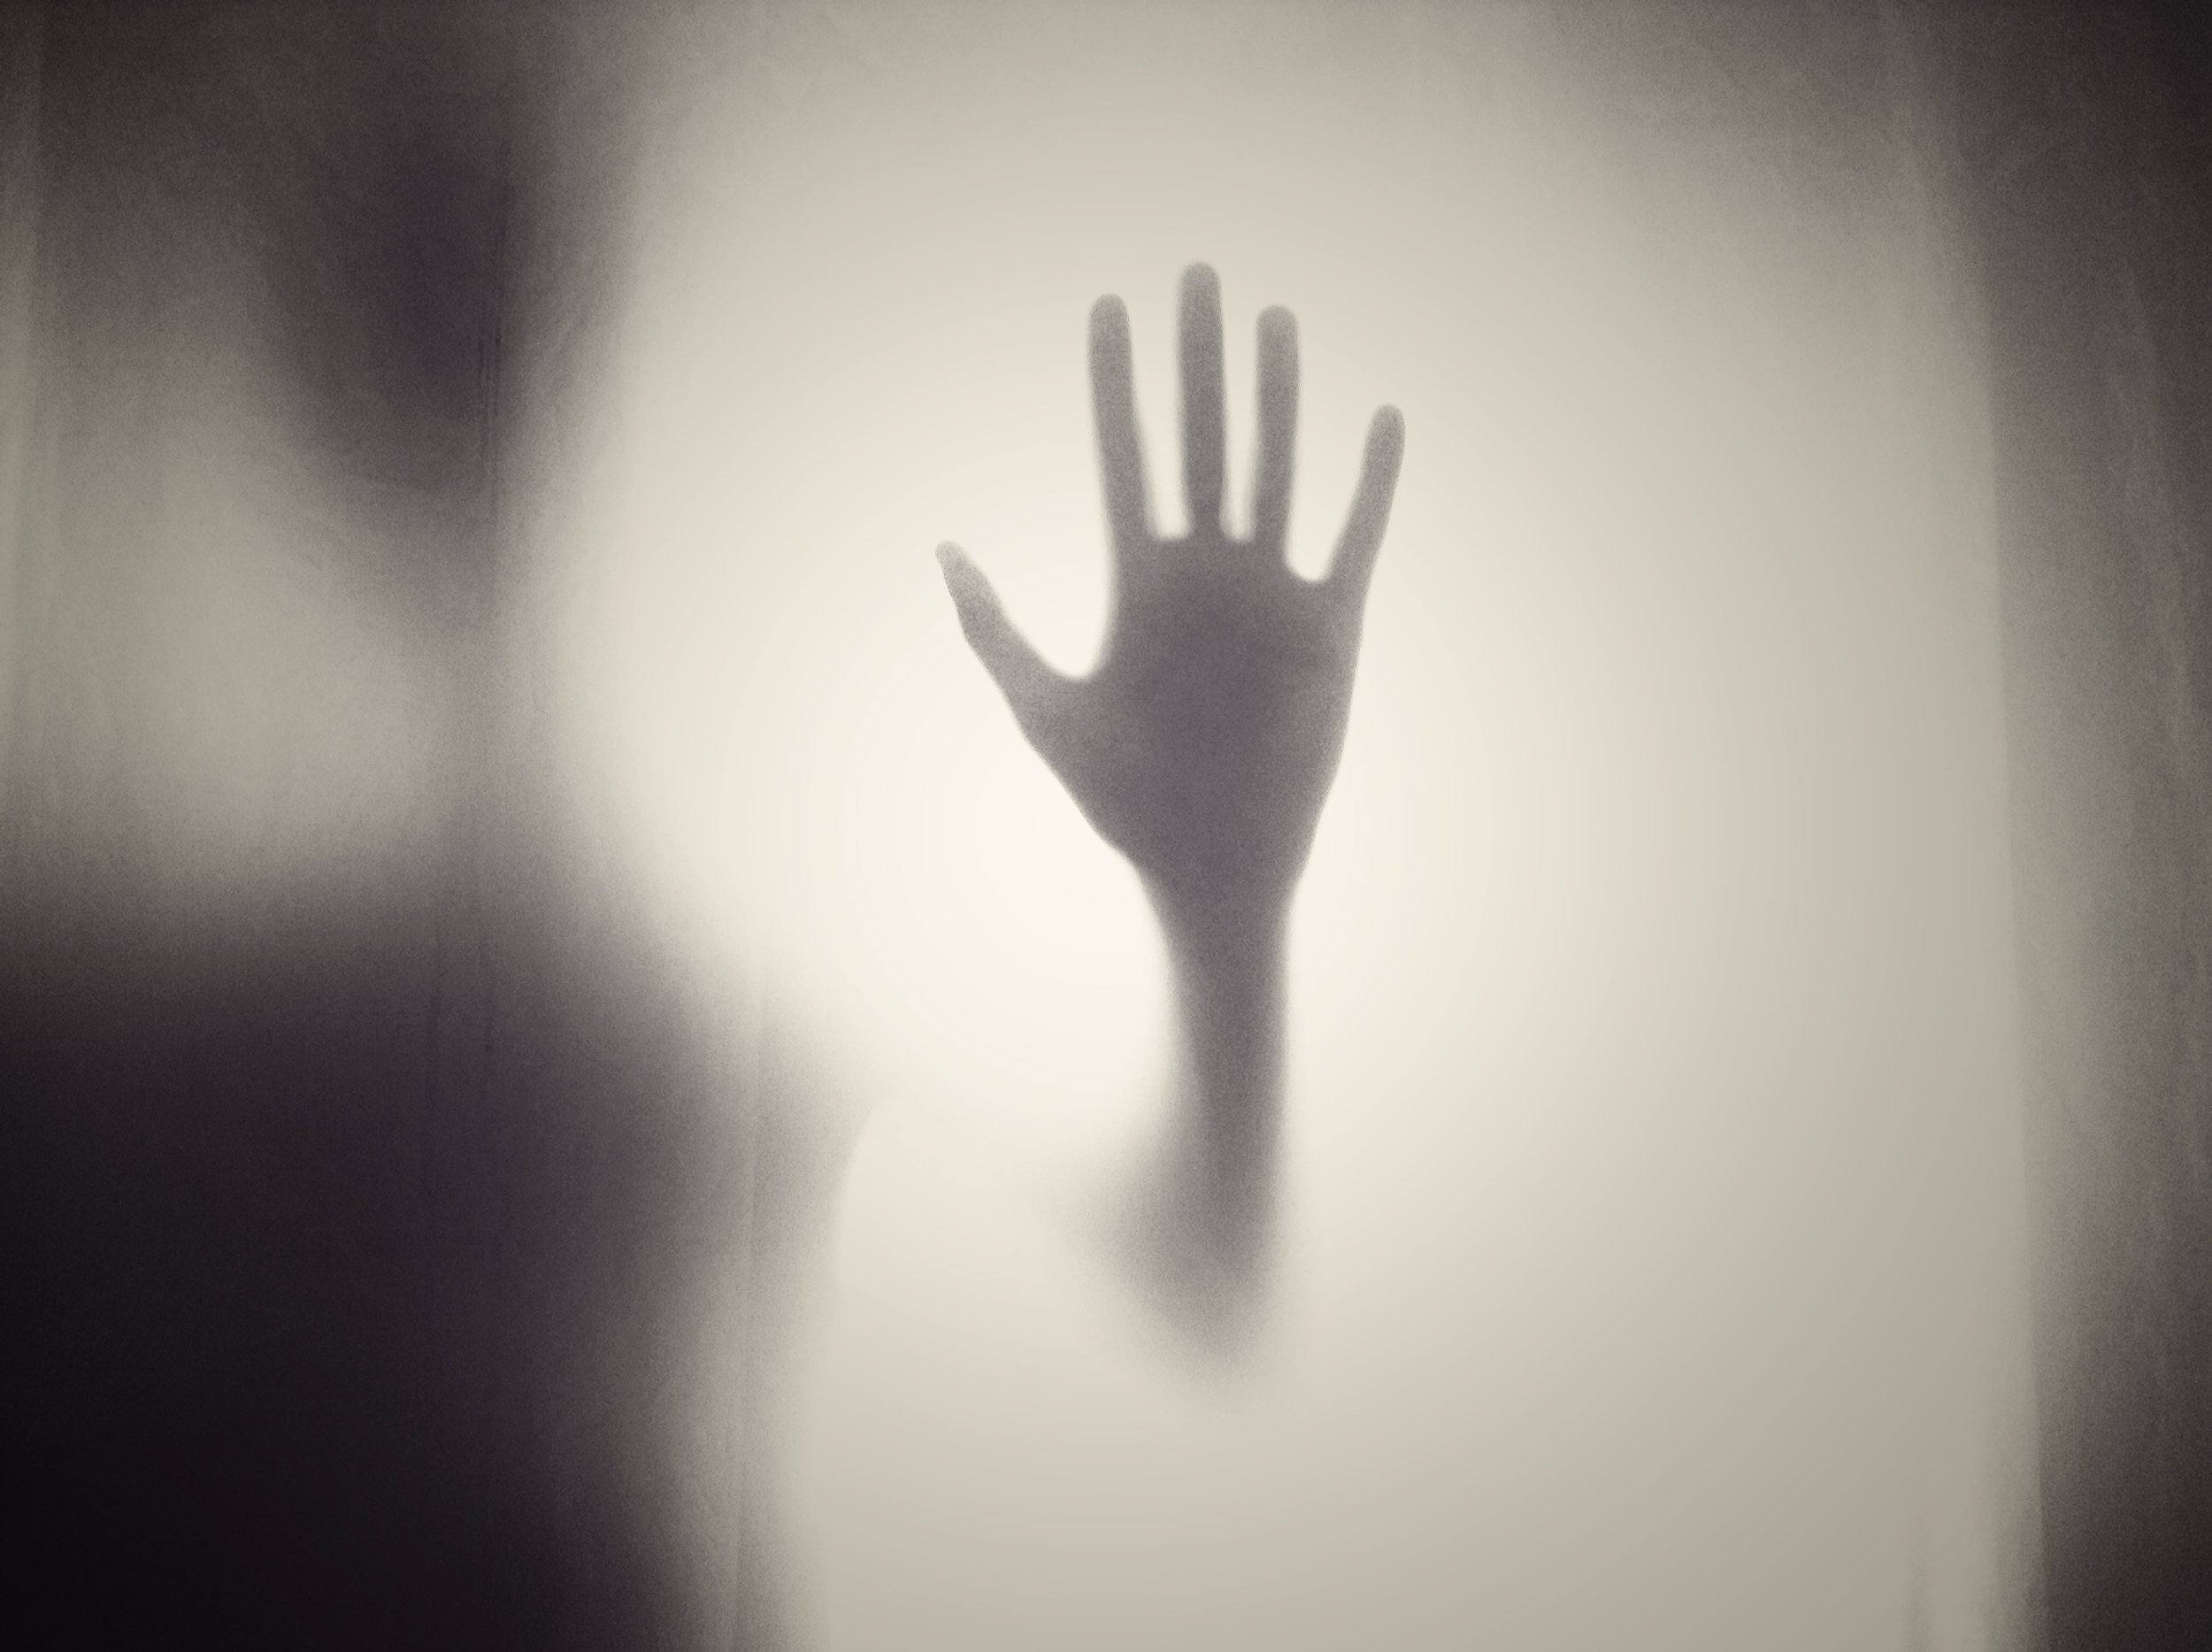 A hand appearing through mist